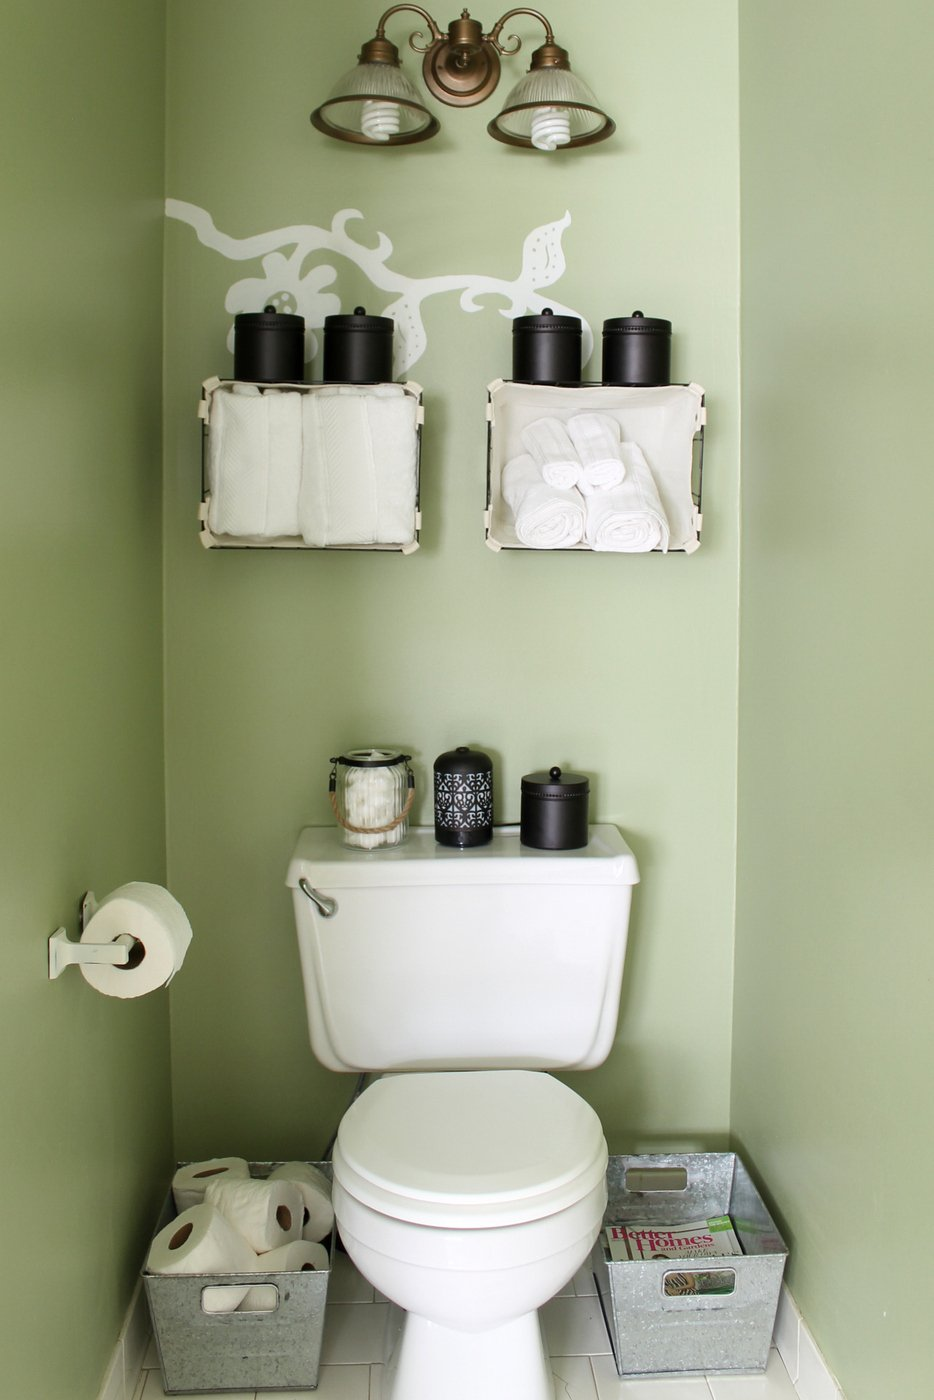 Bathroom organization ideas for small bathrooms 11 for Bathroom storage ideas